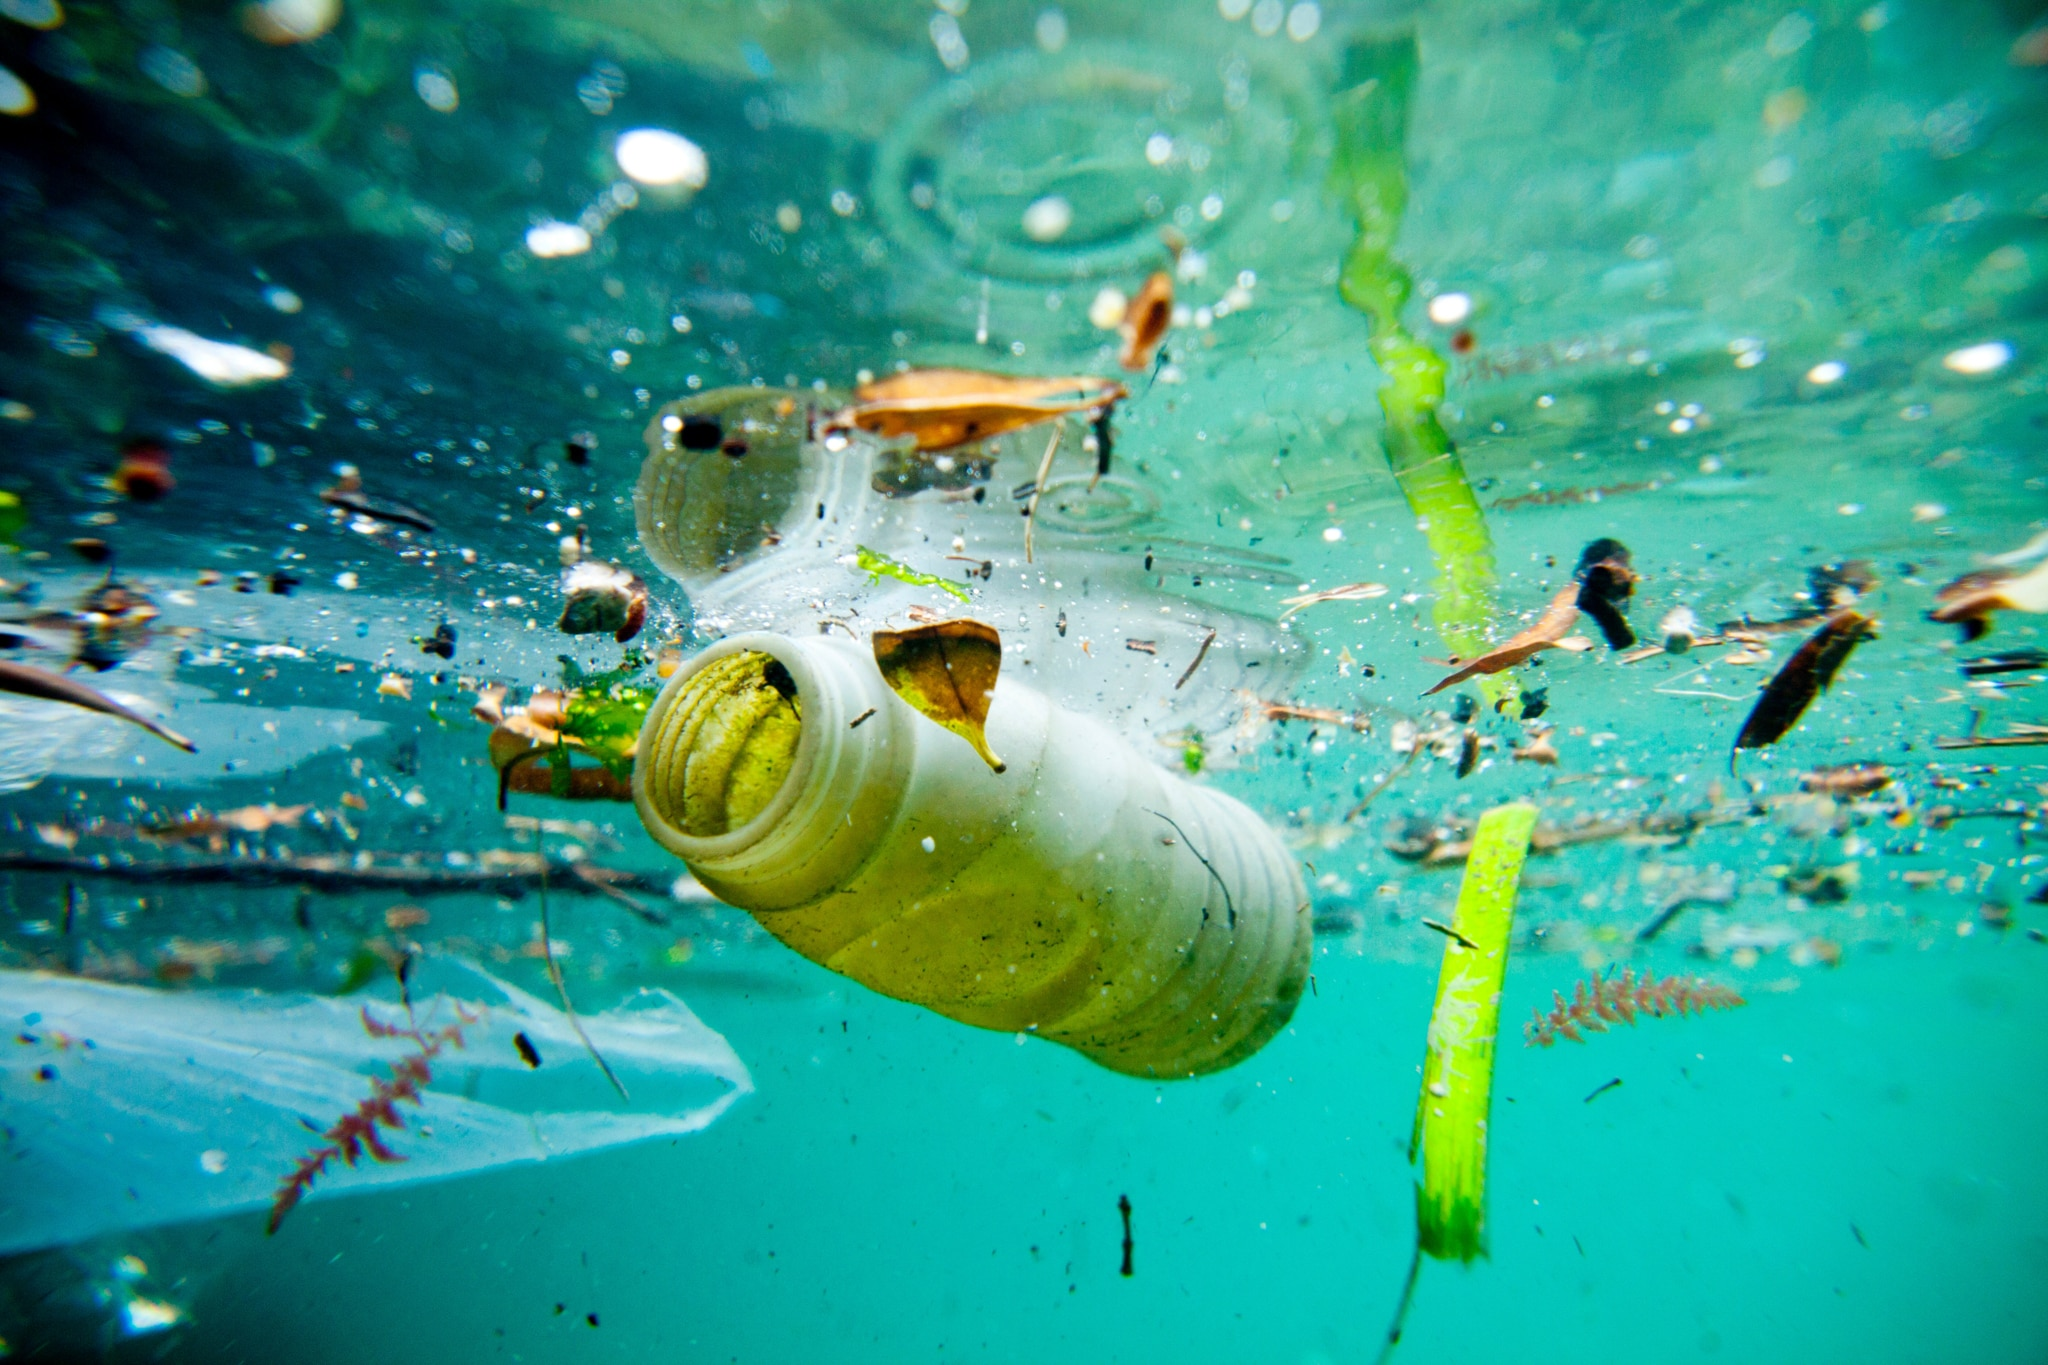 Basura plástica flotando en el agua (© Aurora Photos/Alamy Stock Photo)